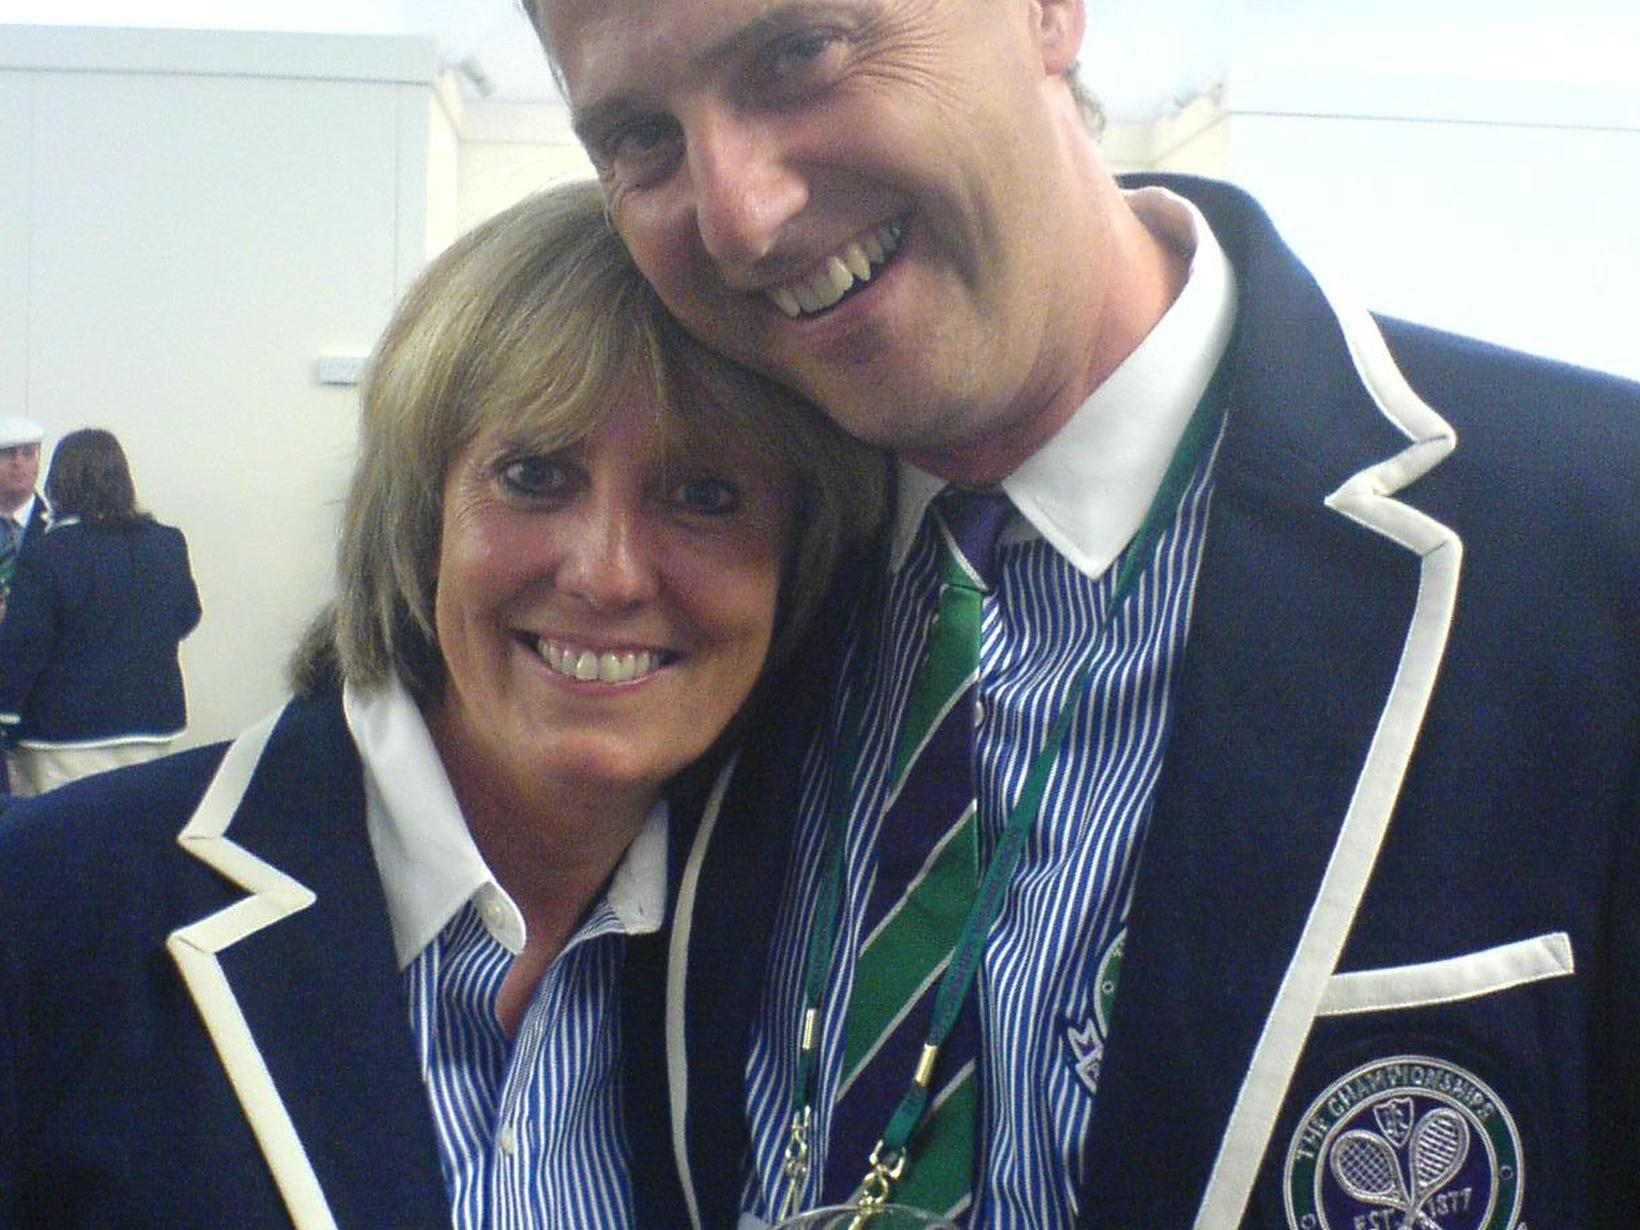 Sue & Graeme from Woore, United Kingdom